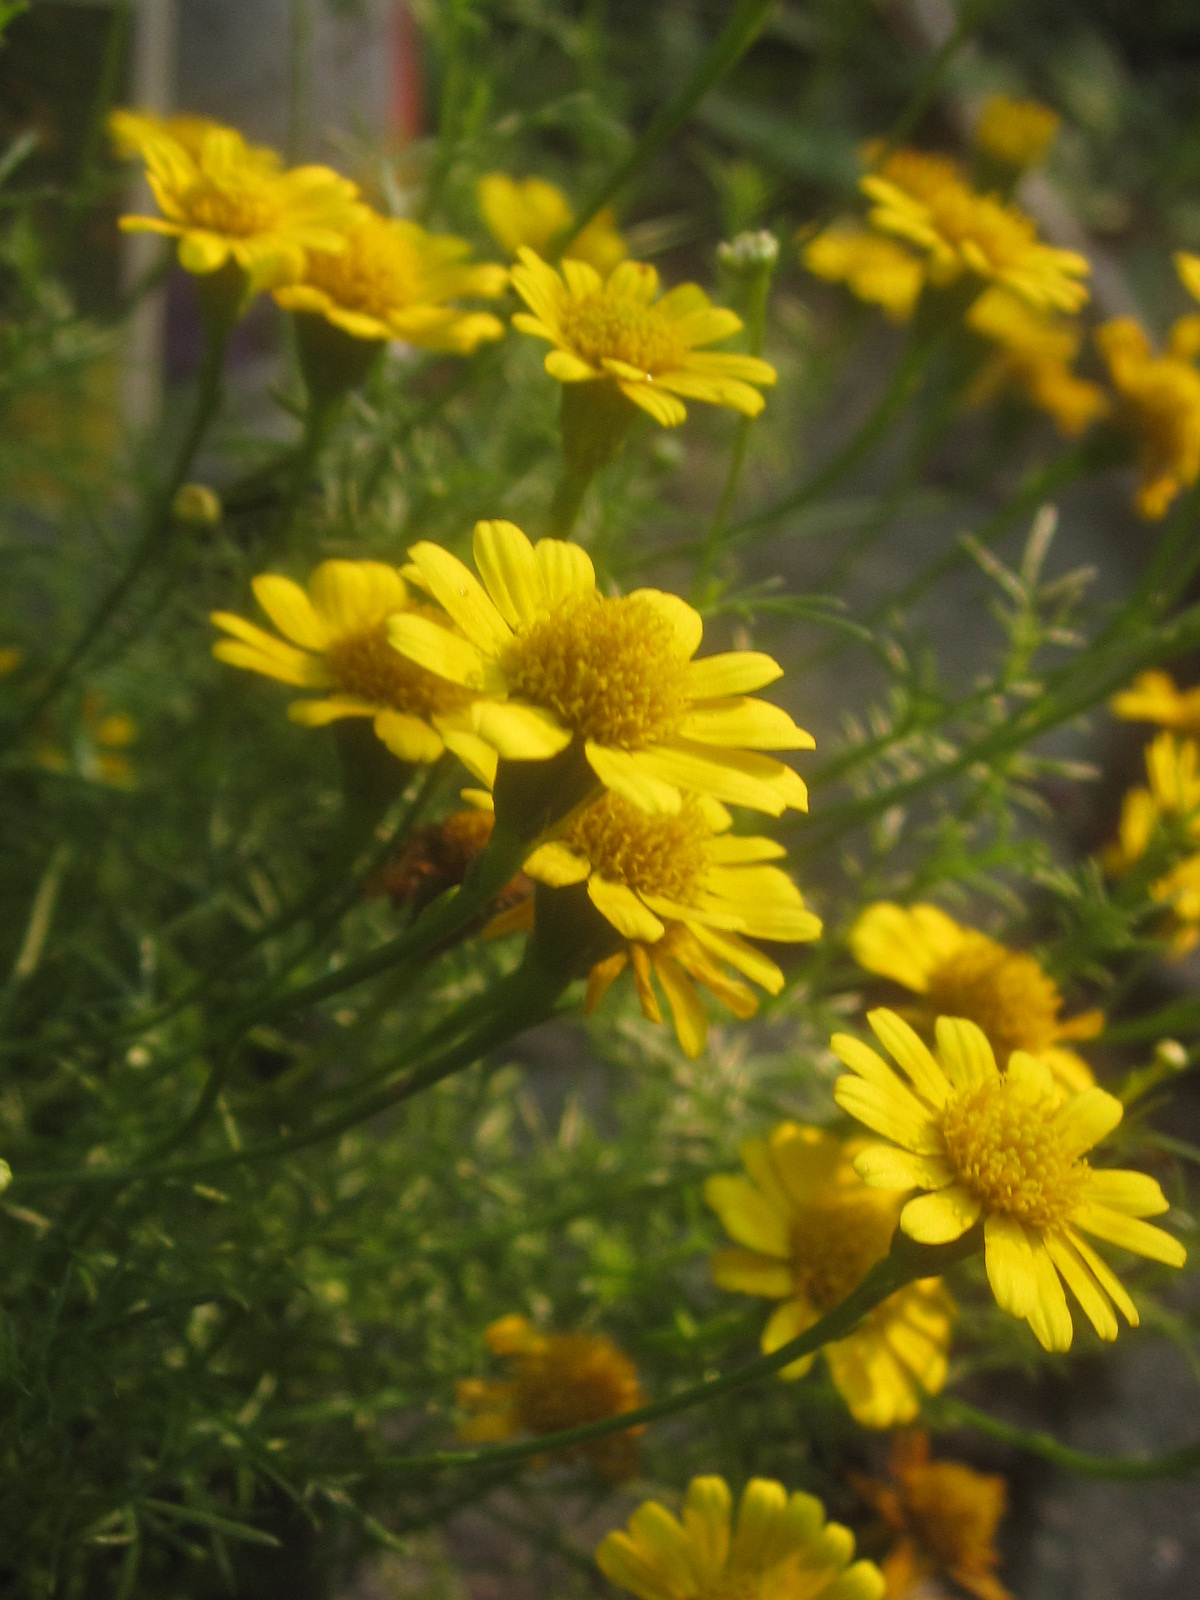 Pictures of yellow flowers with names a species of senecio common types of yellow flowers names blue amp yellow in the of yellow flowers names mightylinksfo Image collections